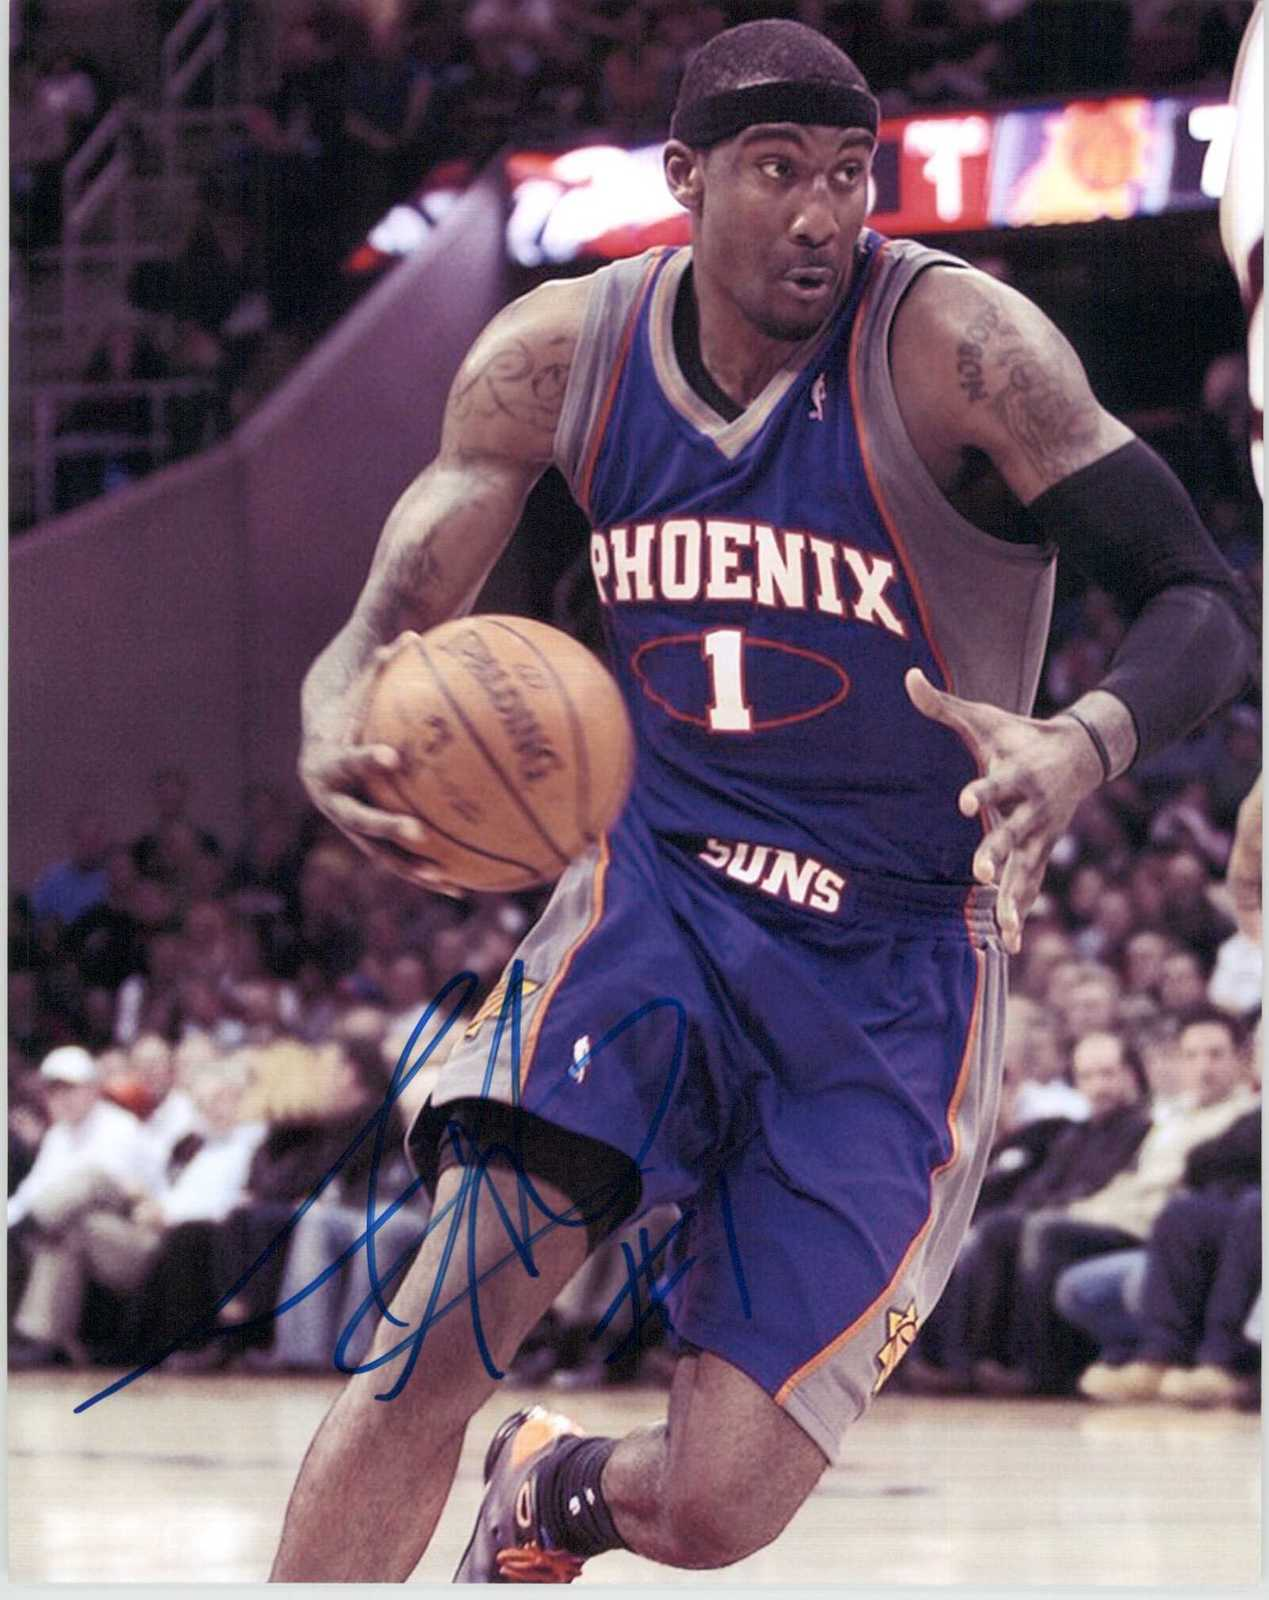 Primary image for Amar'e Stoudemire Signed Autographed Glossy 8x10 Photo - Phoenix Suns